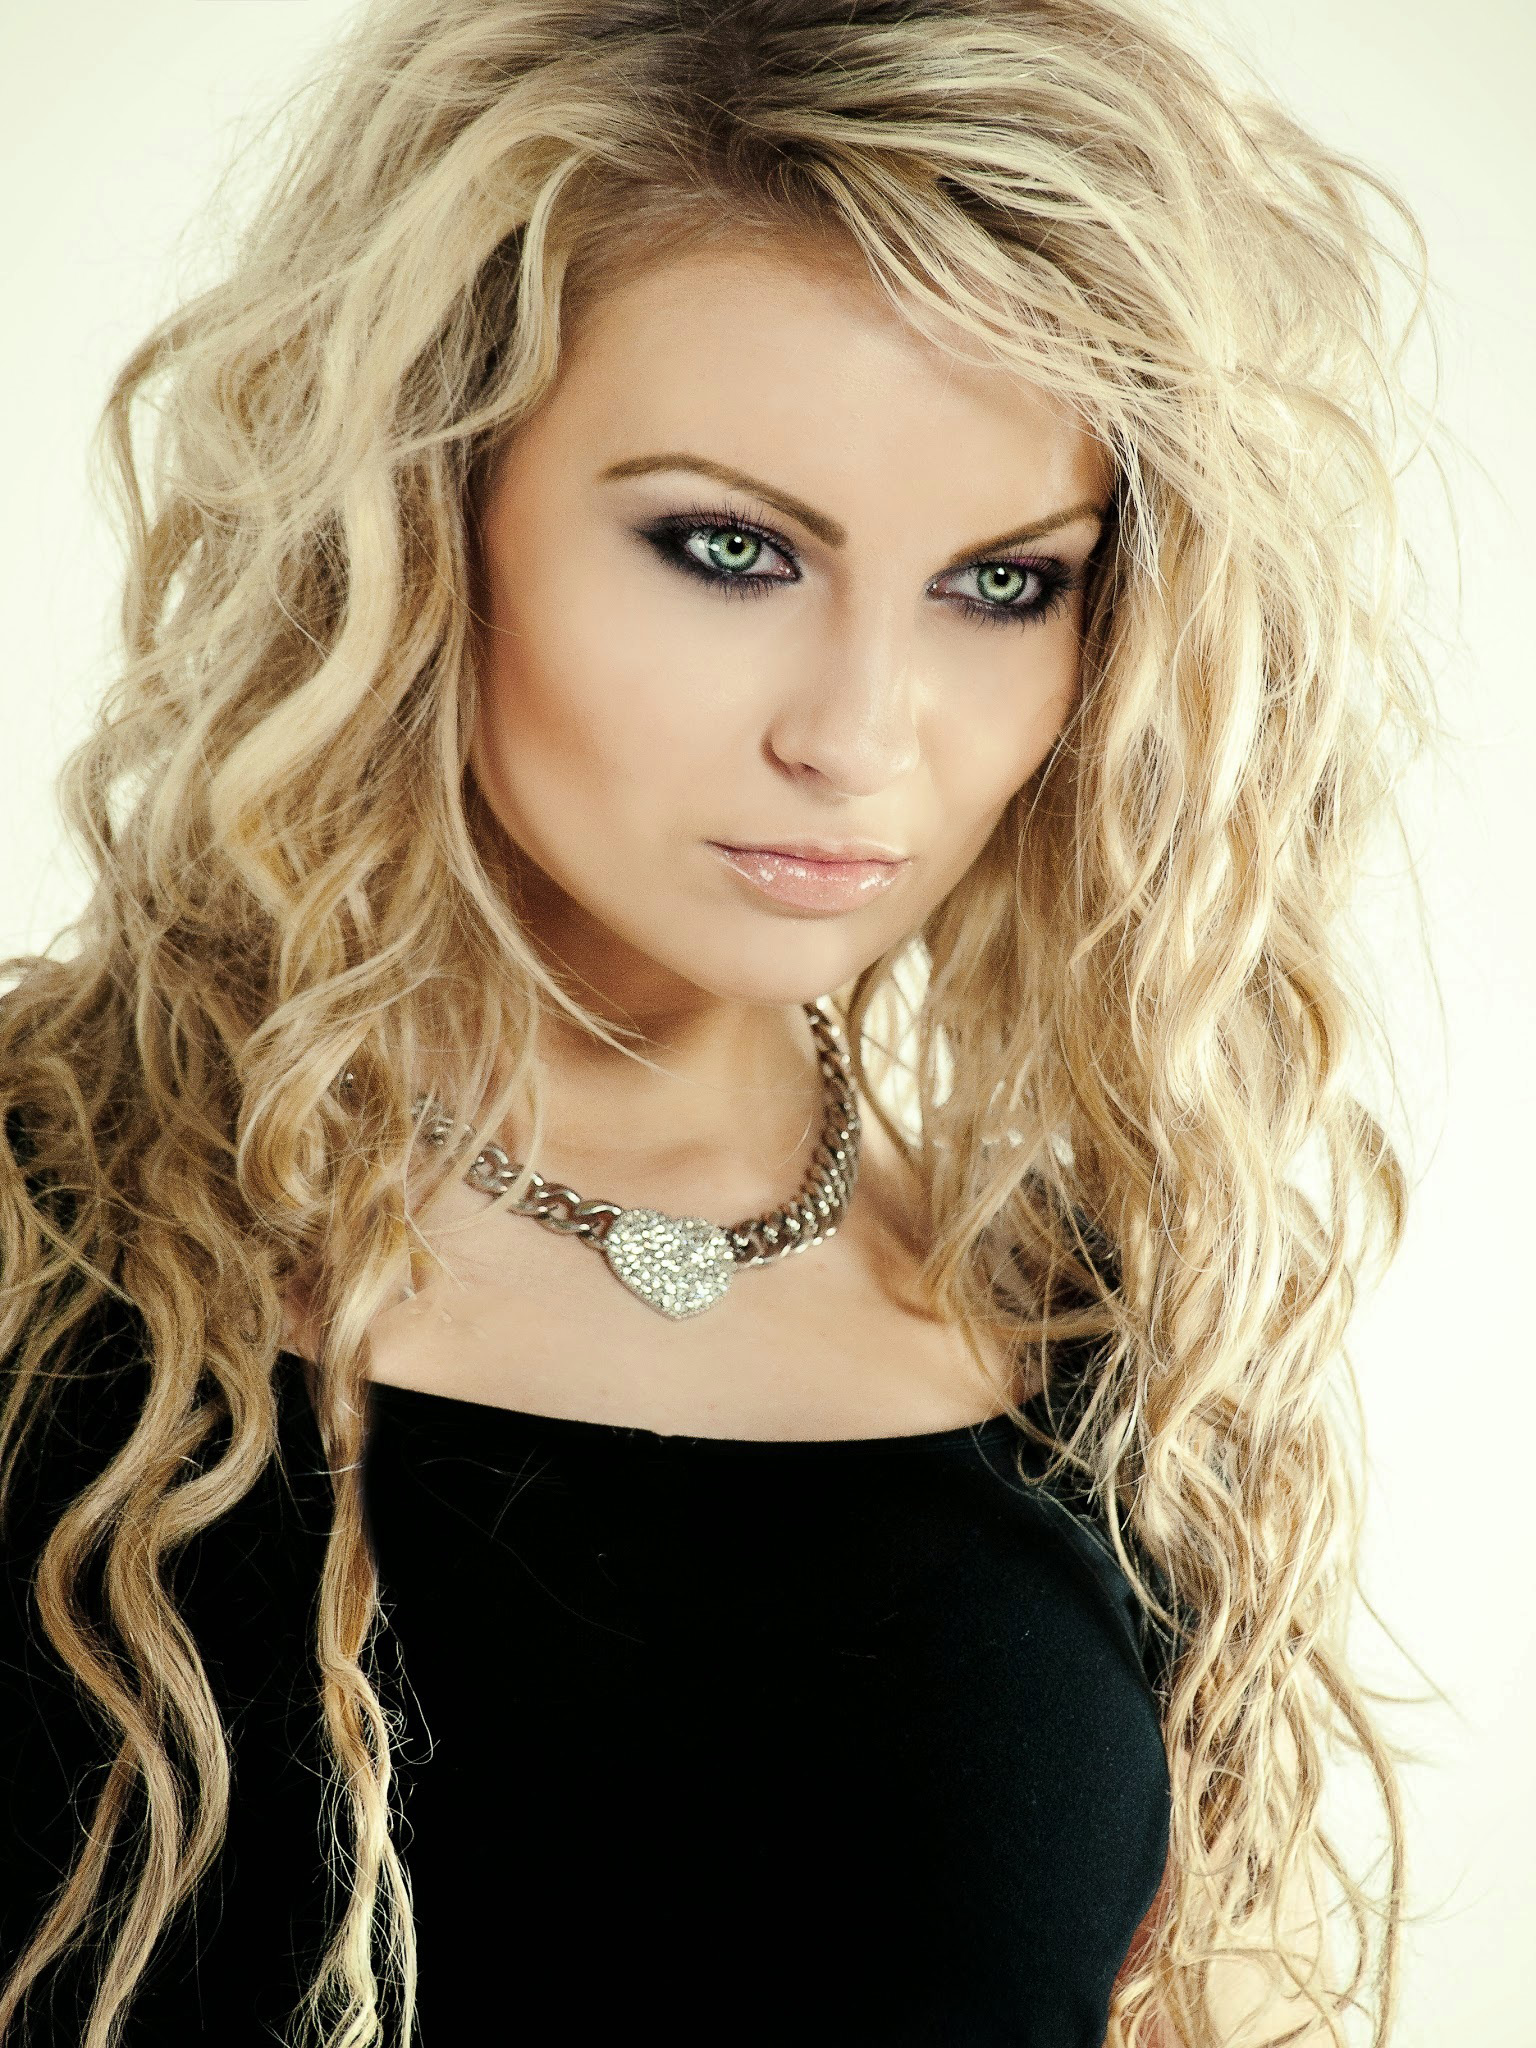 Beautiful Woman With Blonde Hair With Green Eyes Image Free